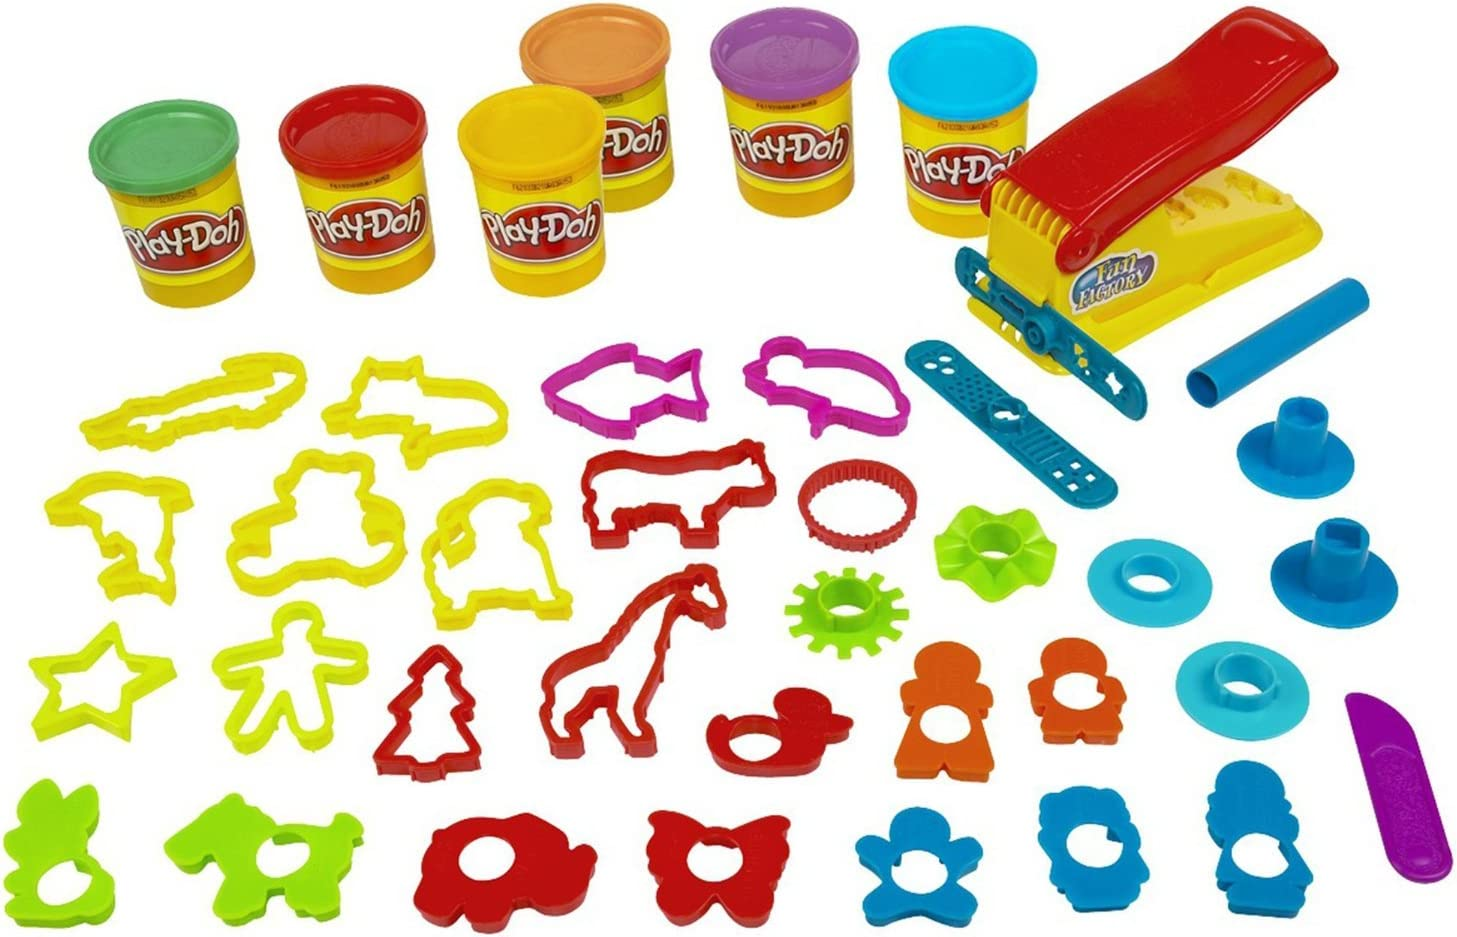 Top 13 Best Play Dough Sets For Boys (2020 Reviews & Buying Guide) 1